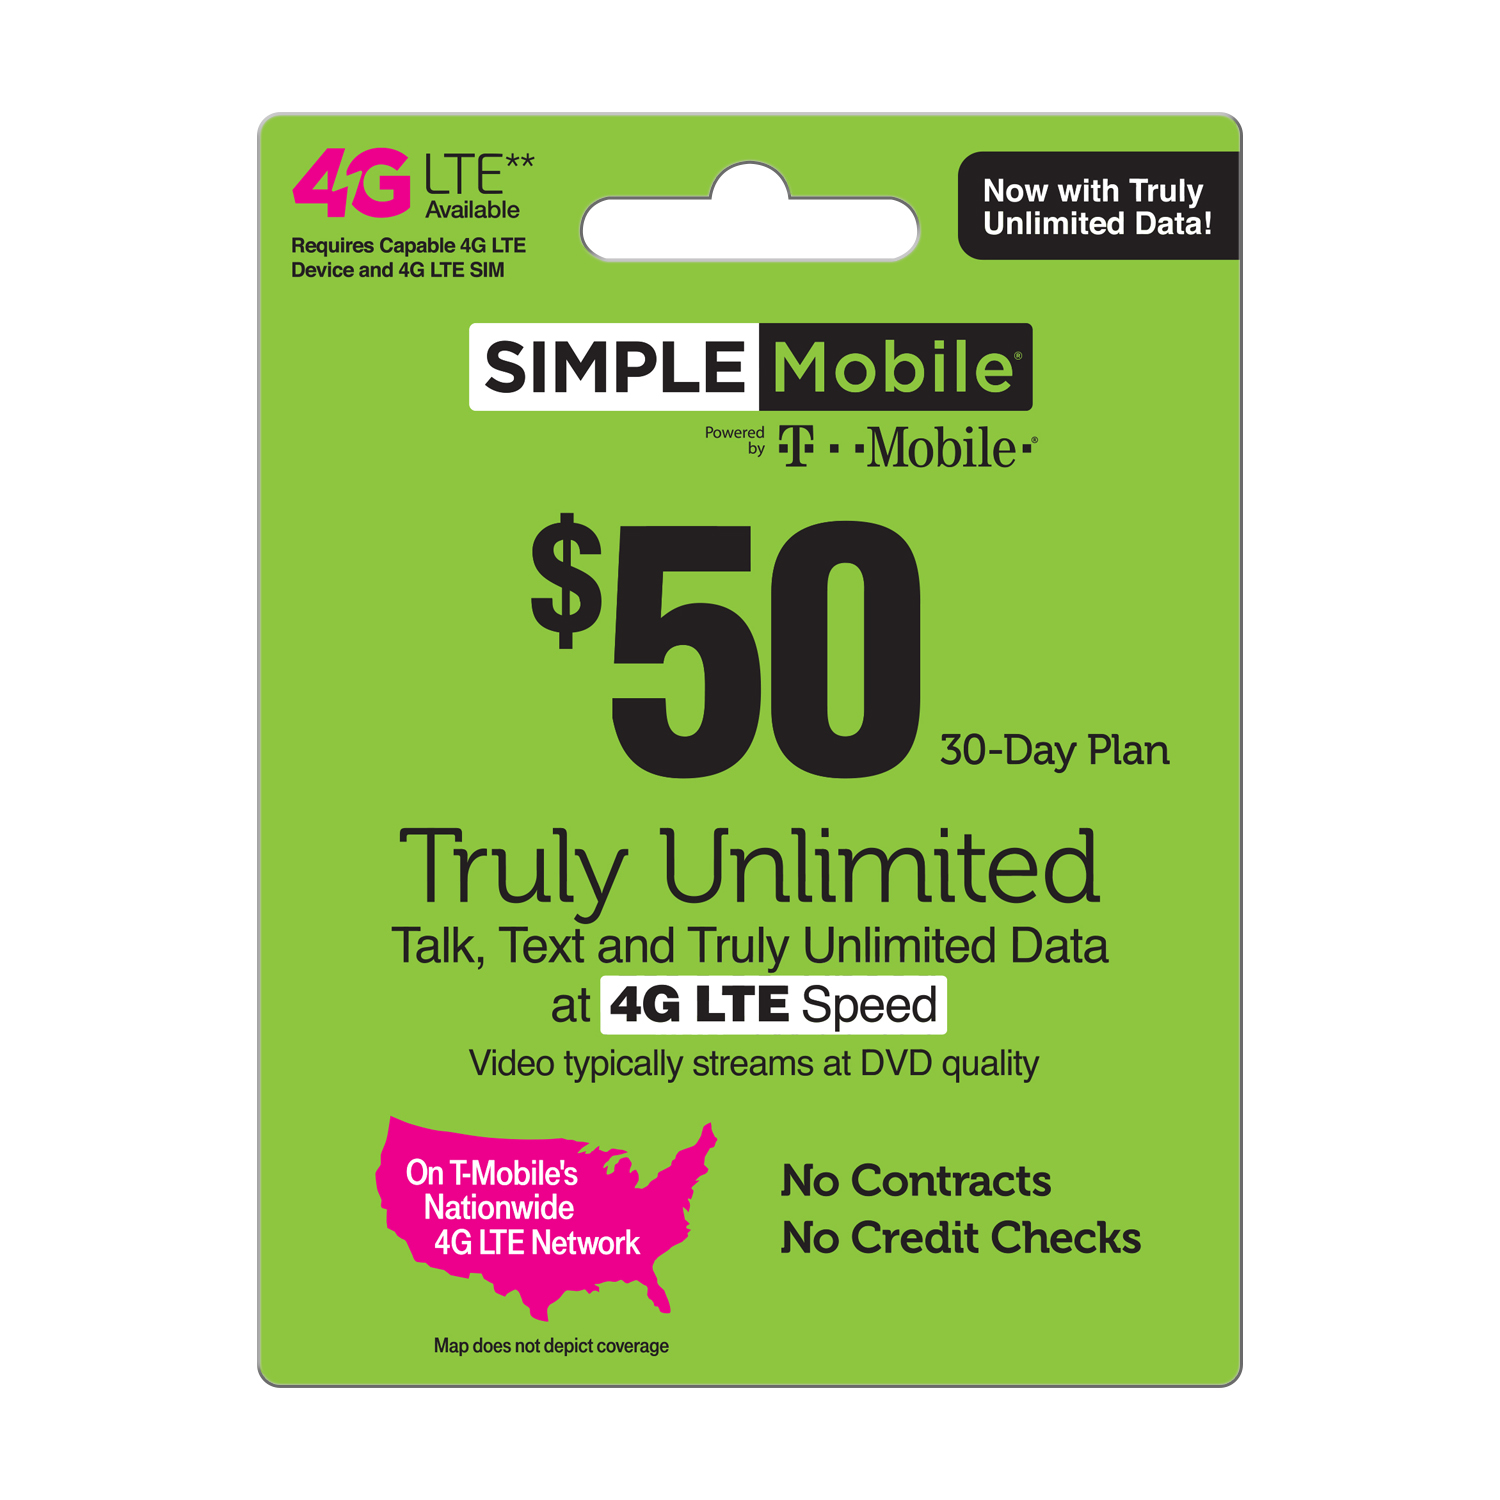 Simple Mobile $50 TRULY UNLIMITED 4G LTE** Data, Talk & Text 30-Day Plan  (Video typically streams at DVD quality) (Email Delivery)